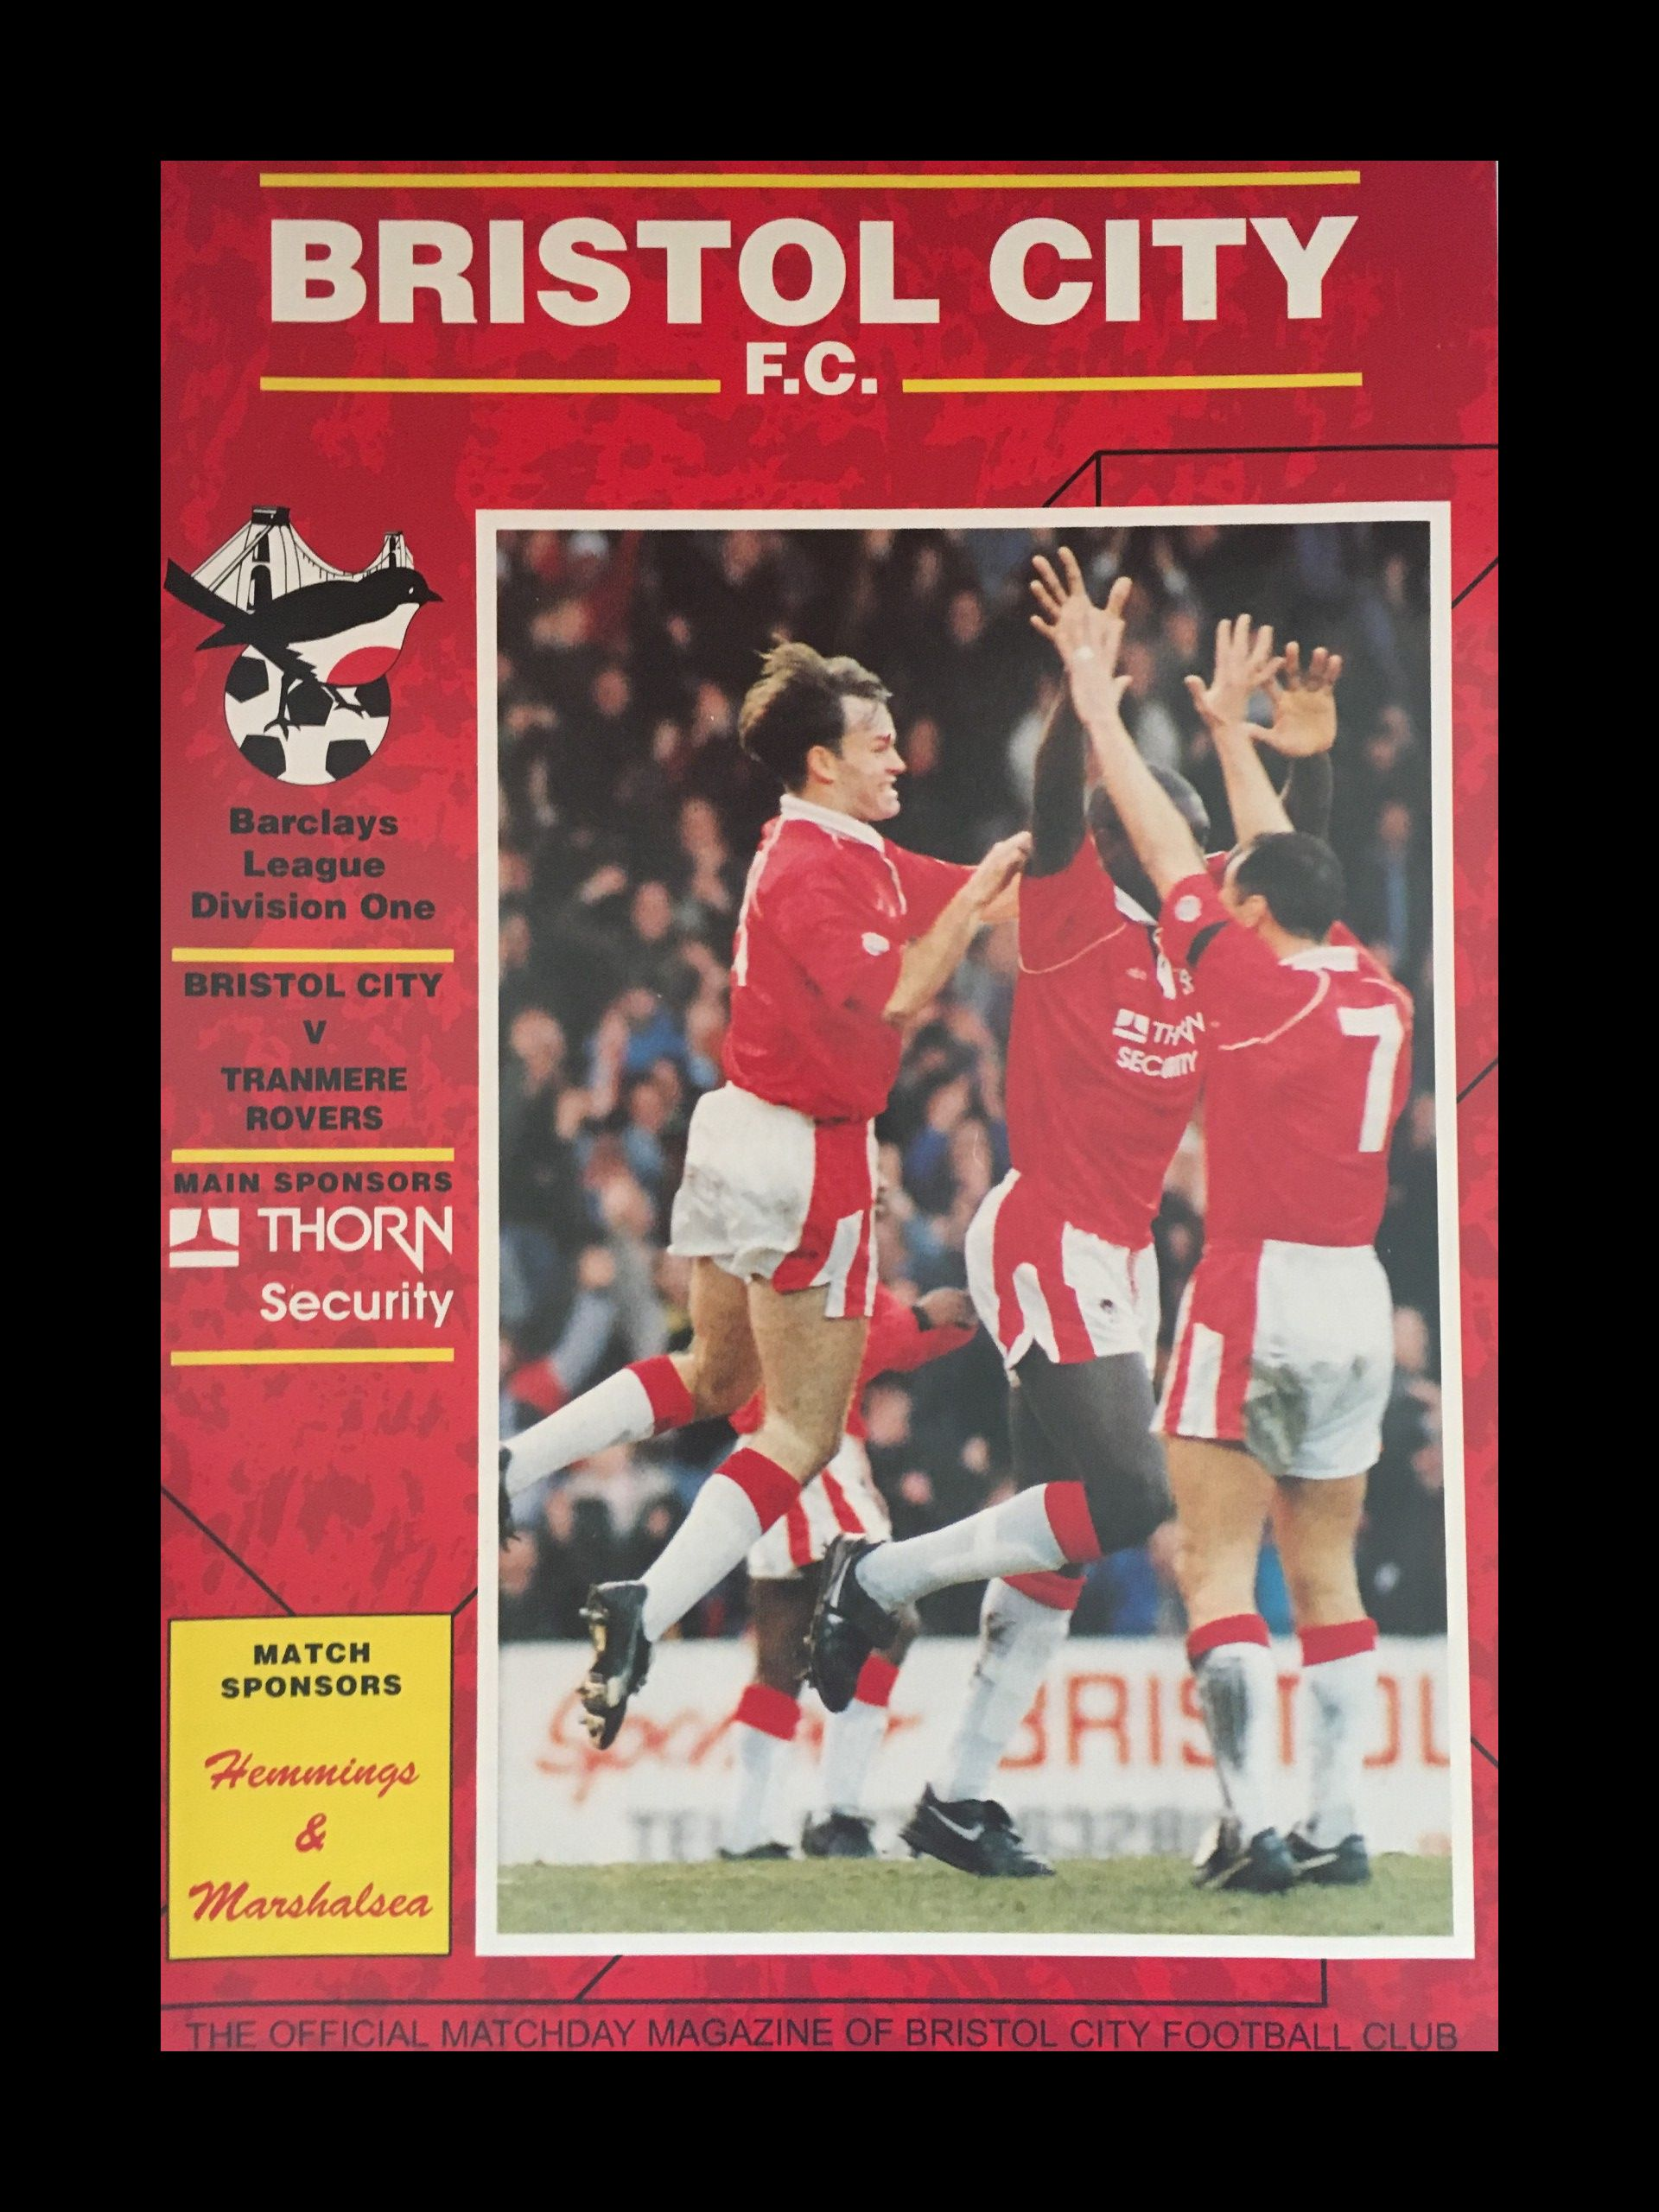 Bristol City v Tranmere Rovers 06-03-1993 Programme